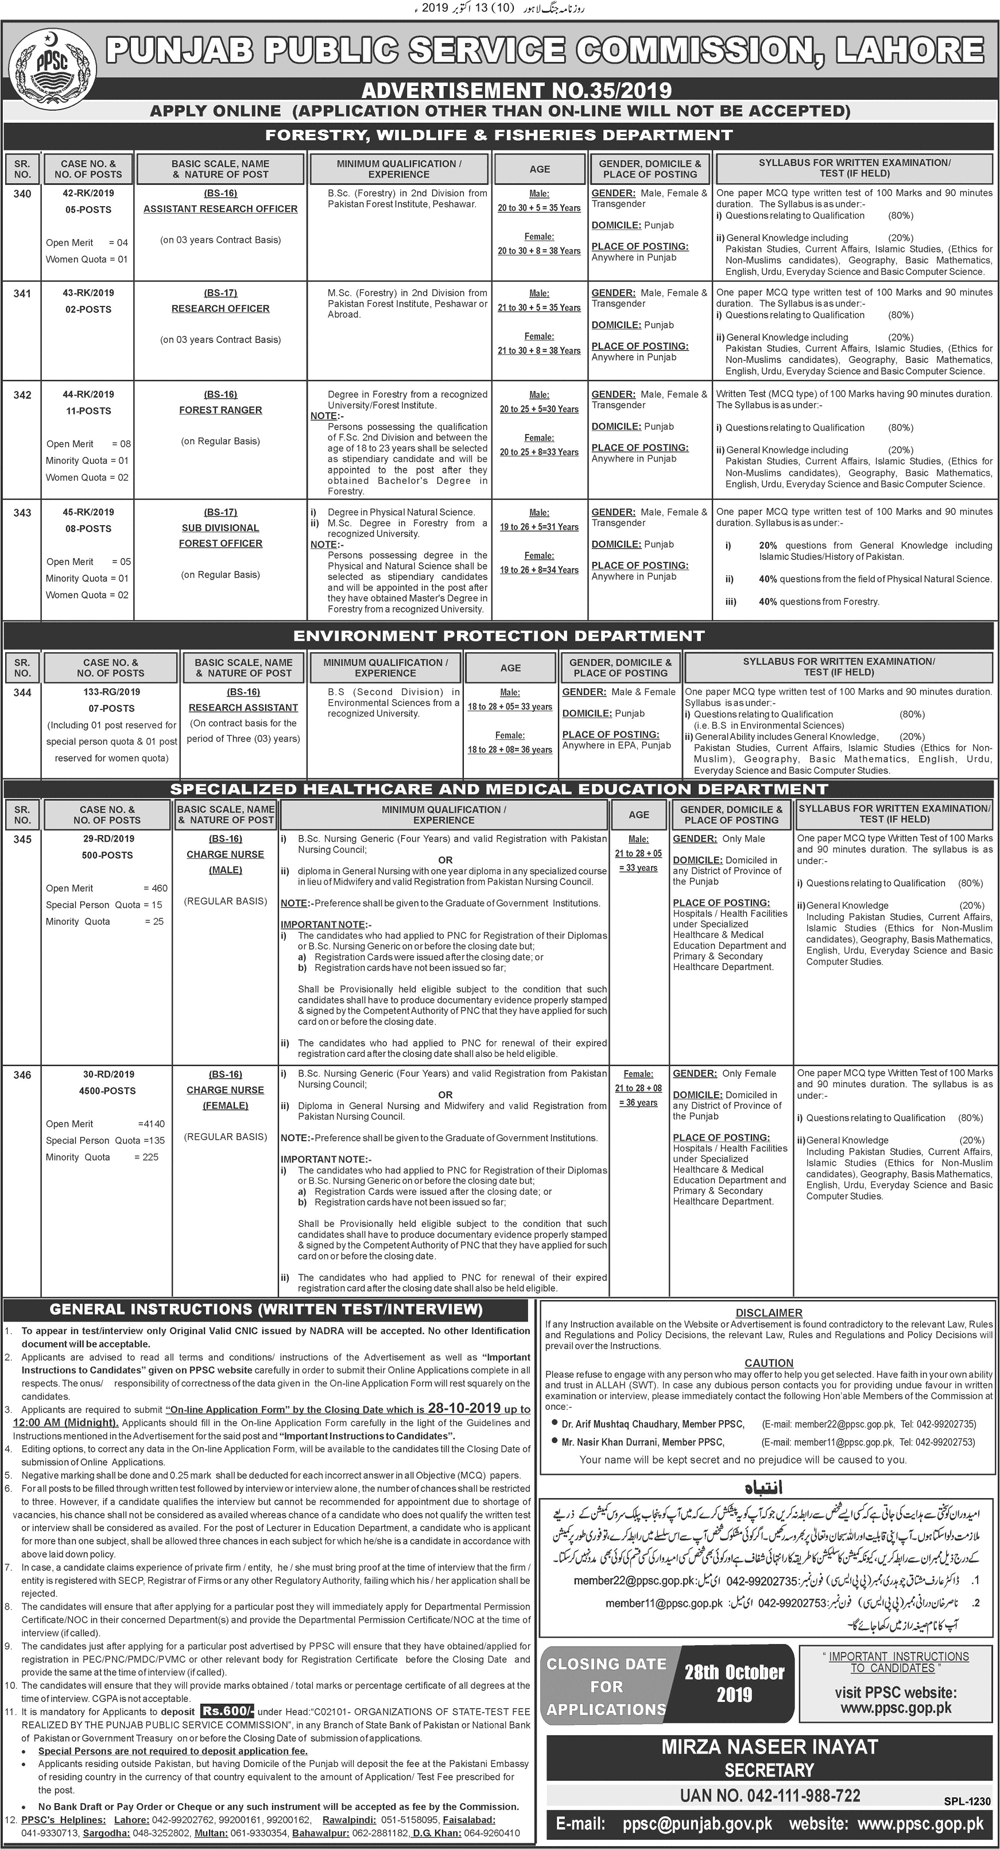 Vacancies of Charge Nurses through PPSC